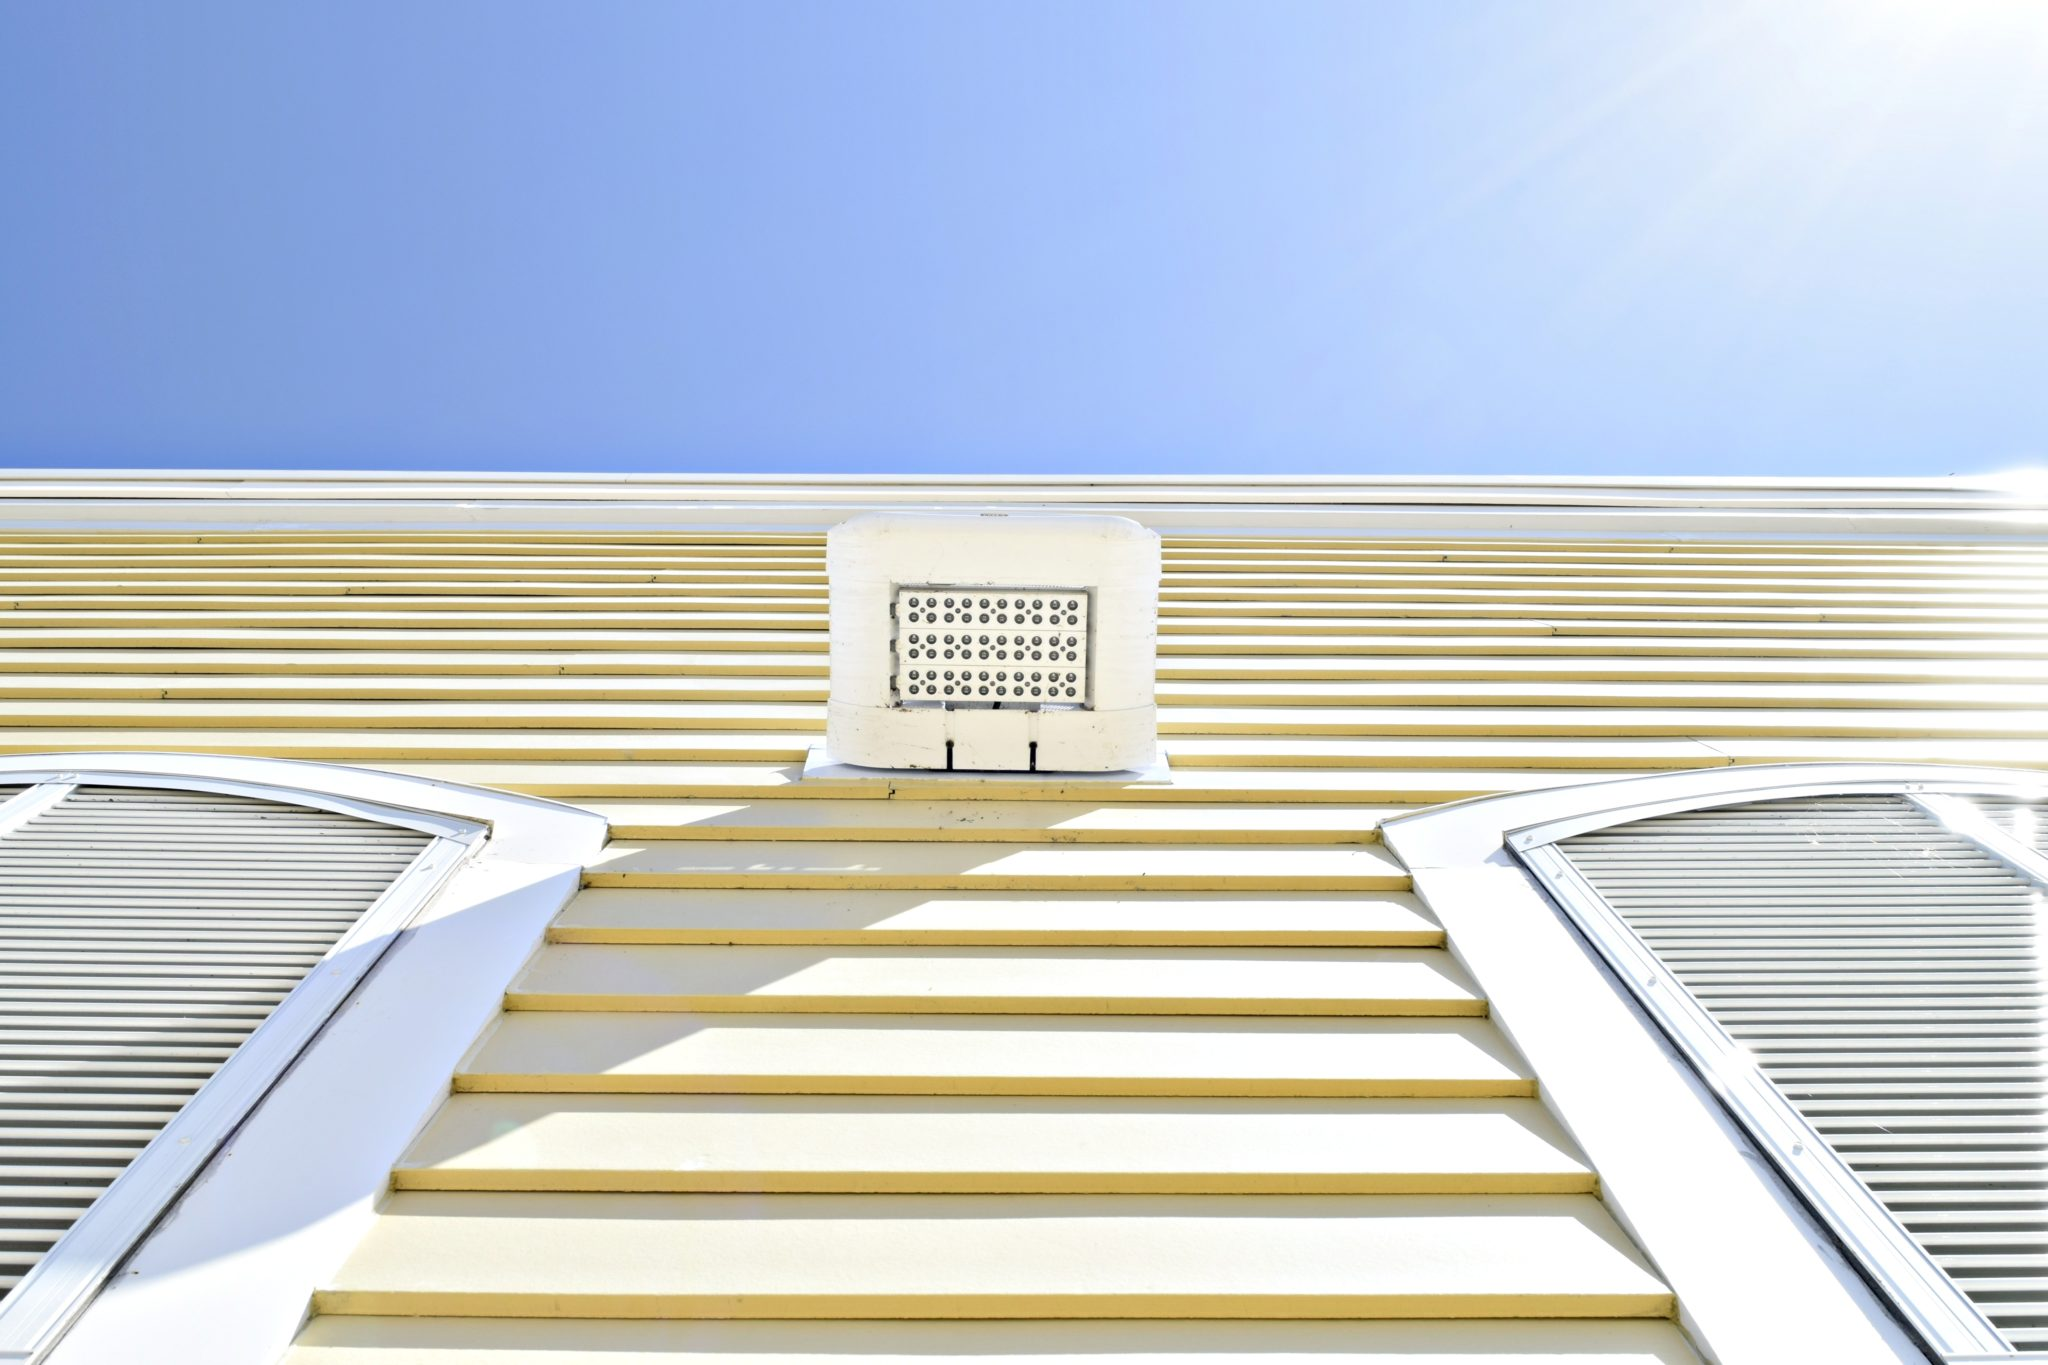 bright-tropical-yellow-siding-shutters-and-light-w-MN5XT68